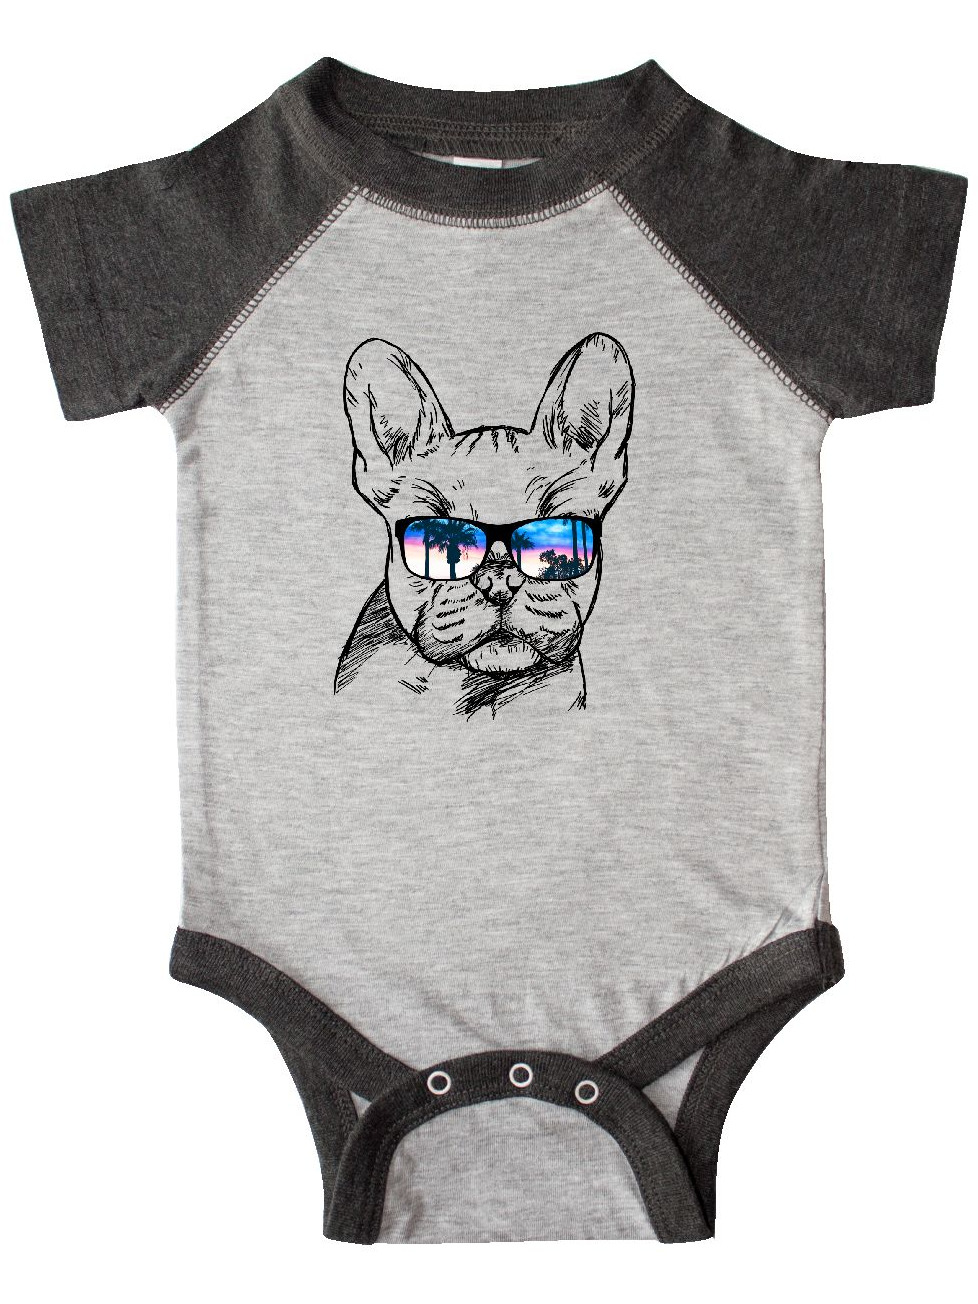 663 Funny Cat Sunglasses Baby Grow Bodysuit Baby Suit Vest Ideal Gift Unisex